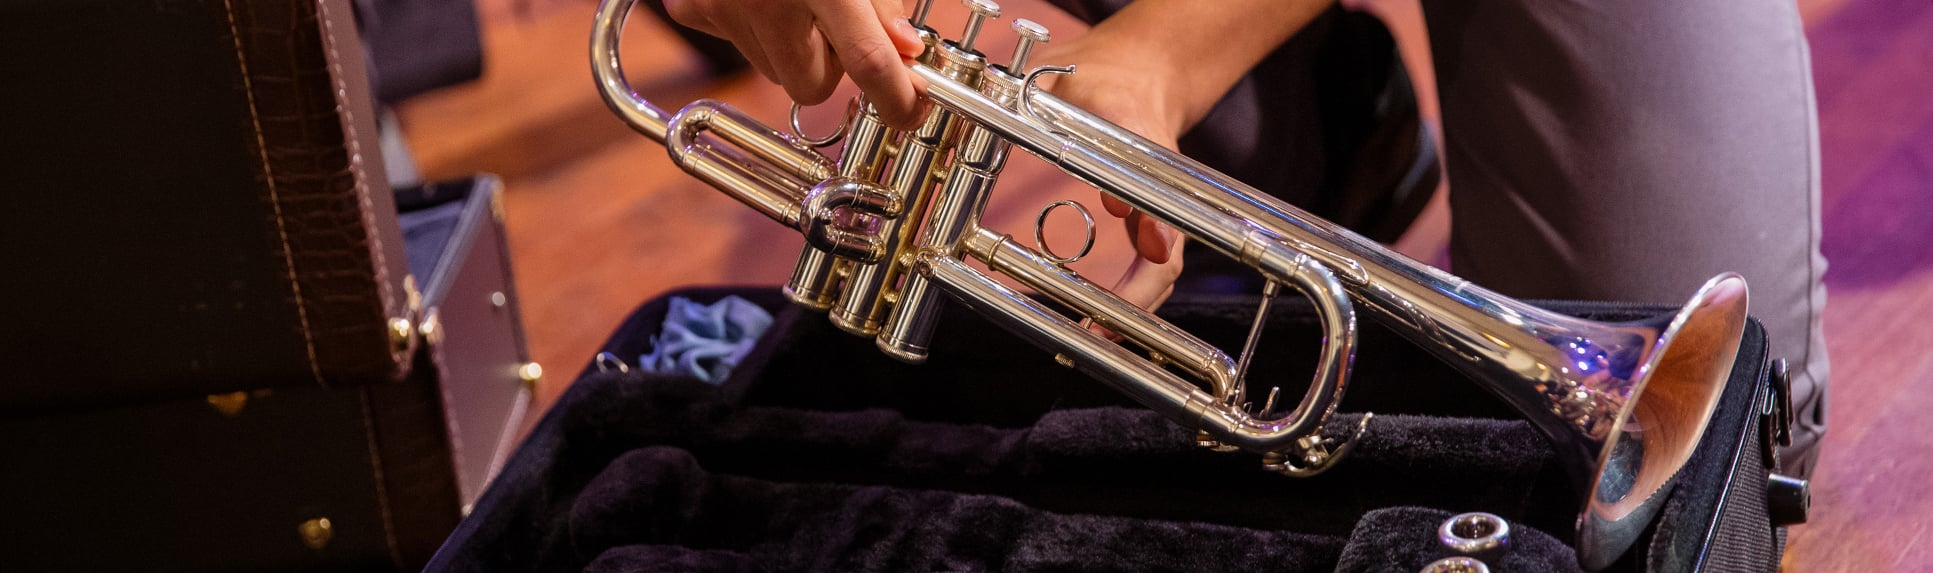 A young man putting his trumpet into a case